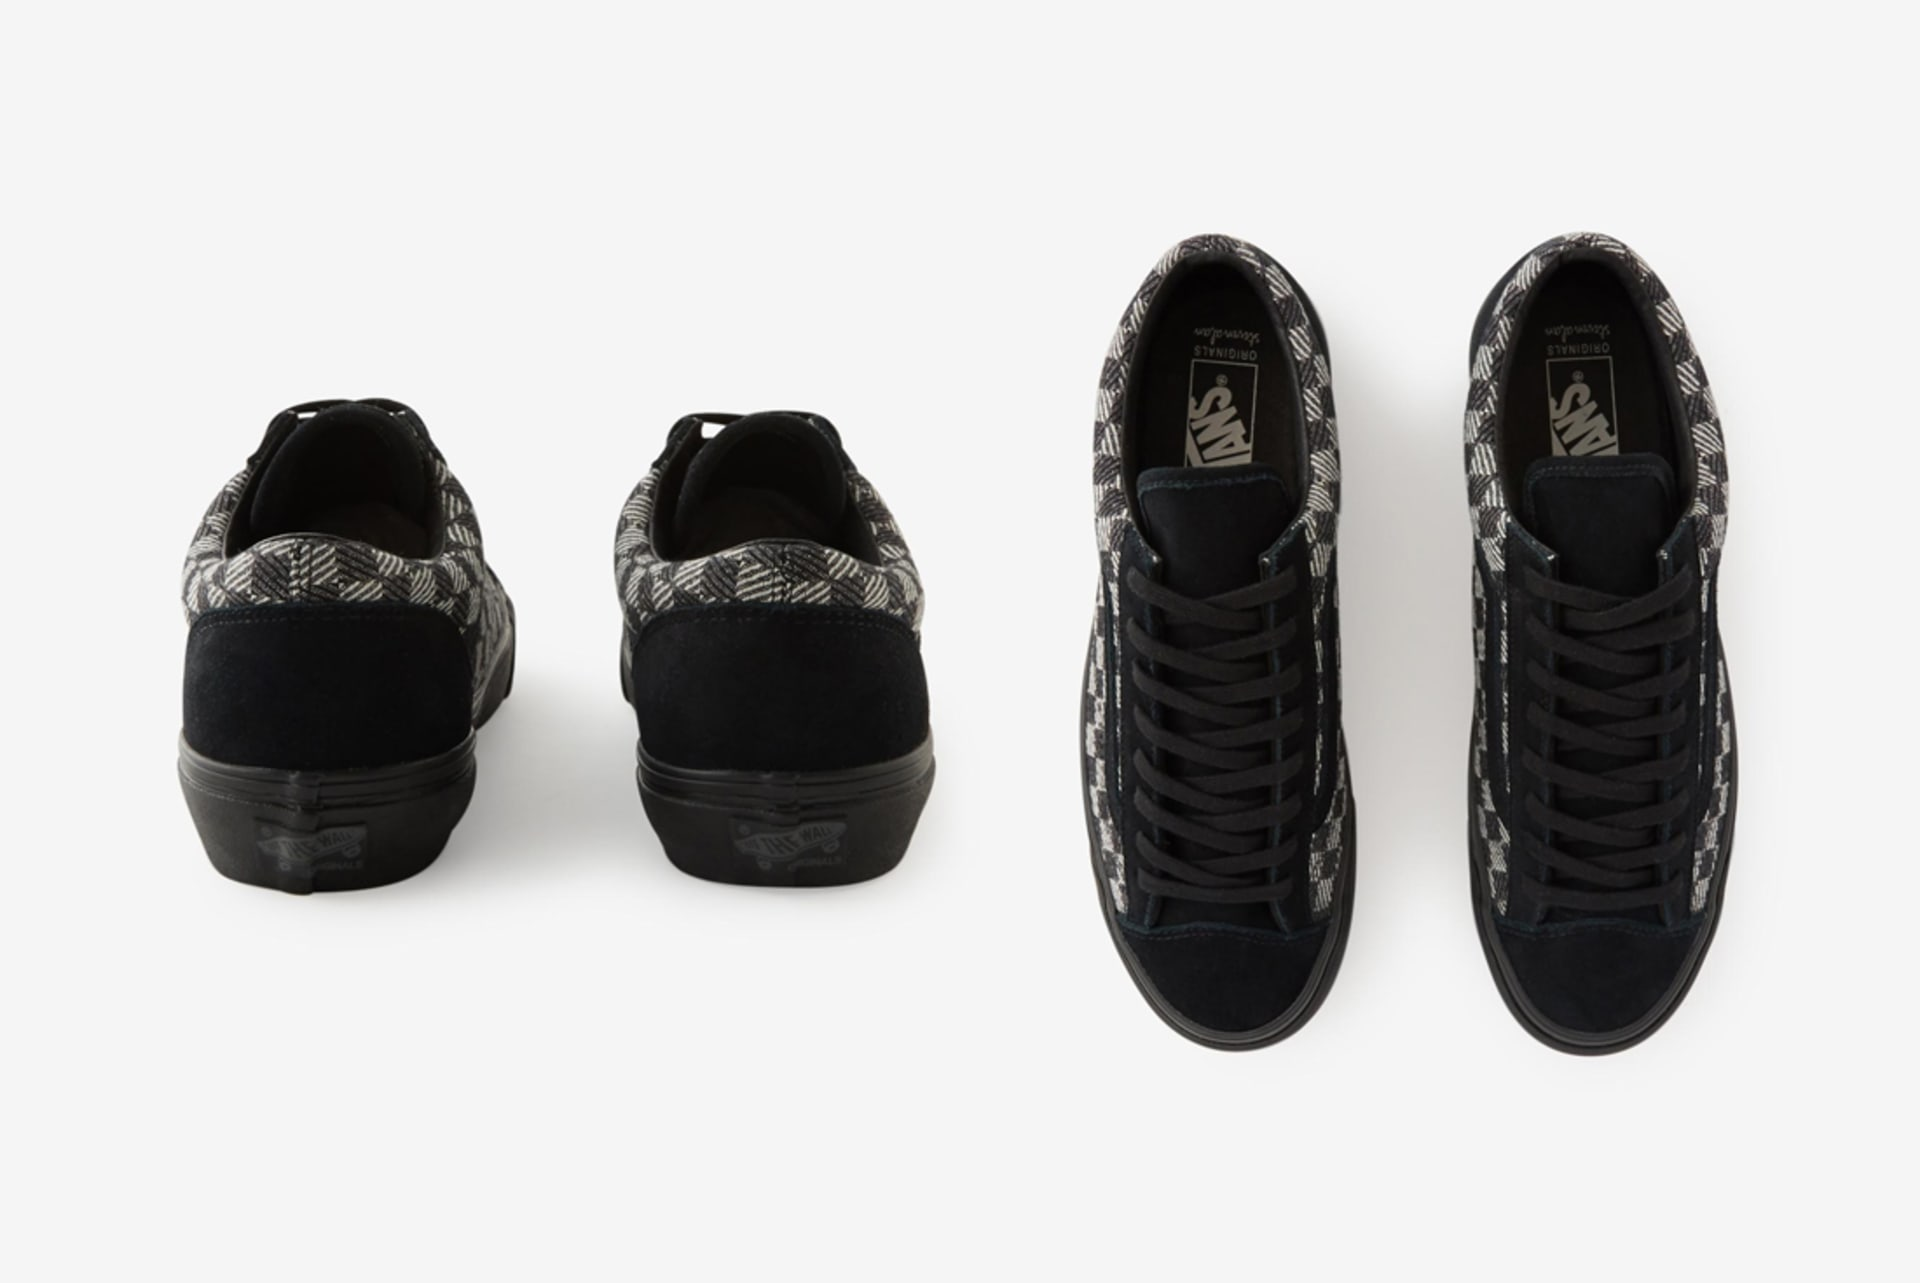 b19f36b0875814 Steven Alan s next collaboration with Vans